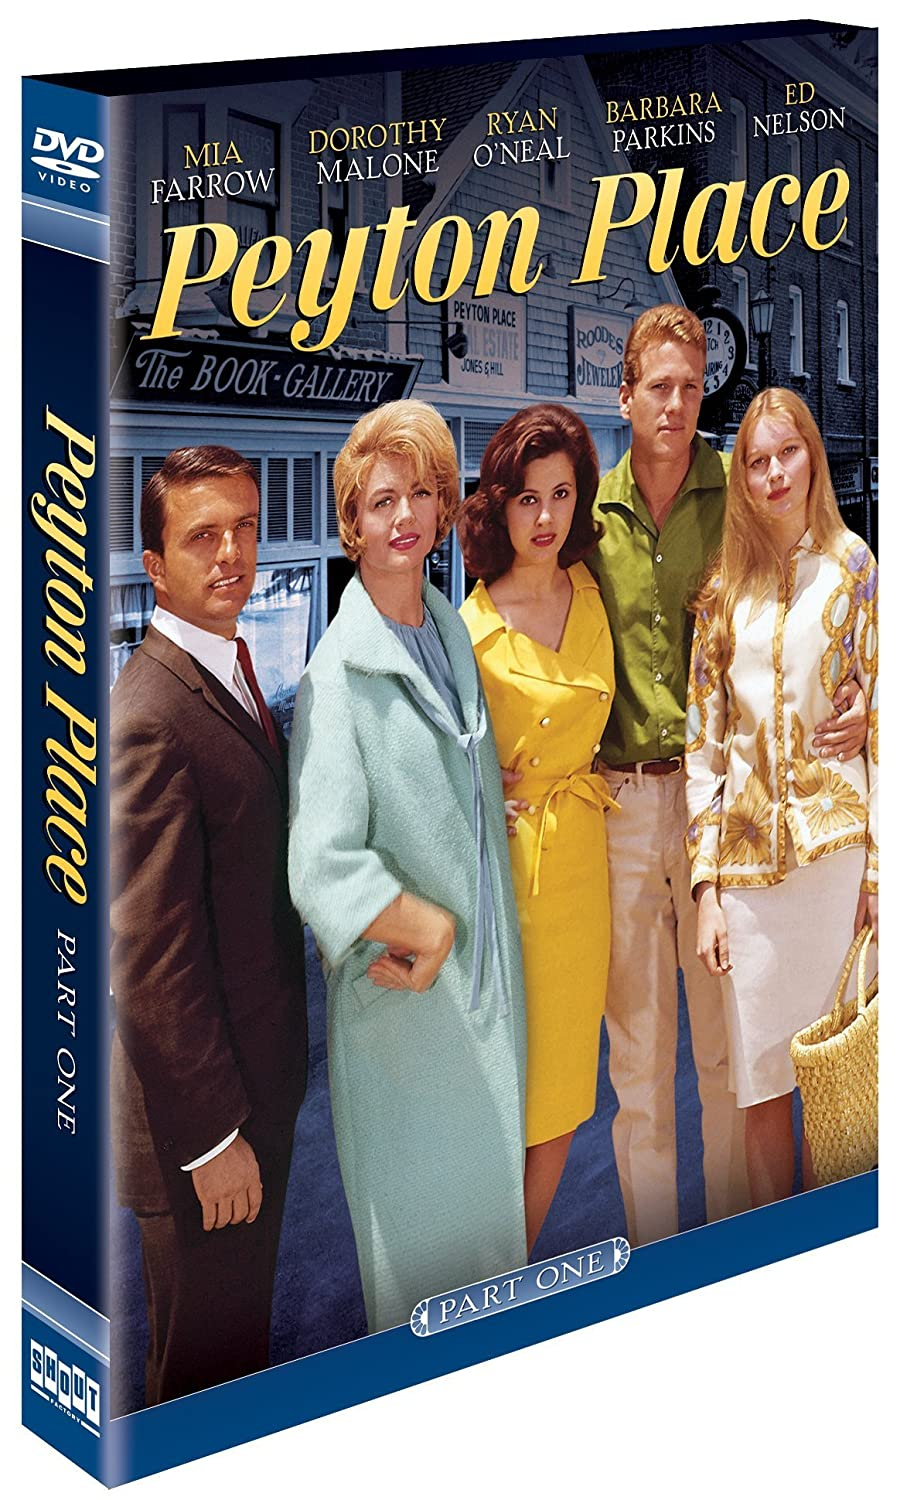 Amazon com: Peyton Place: Part One: Dorothy Malone, Warner Anderson